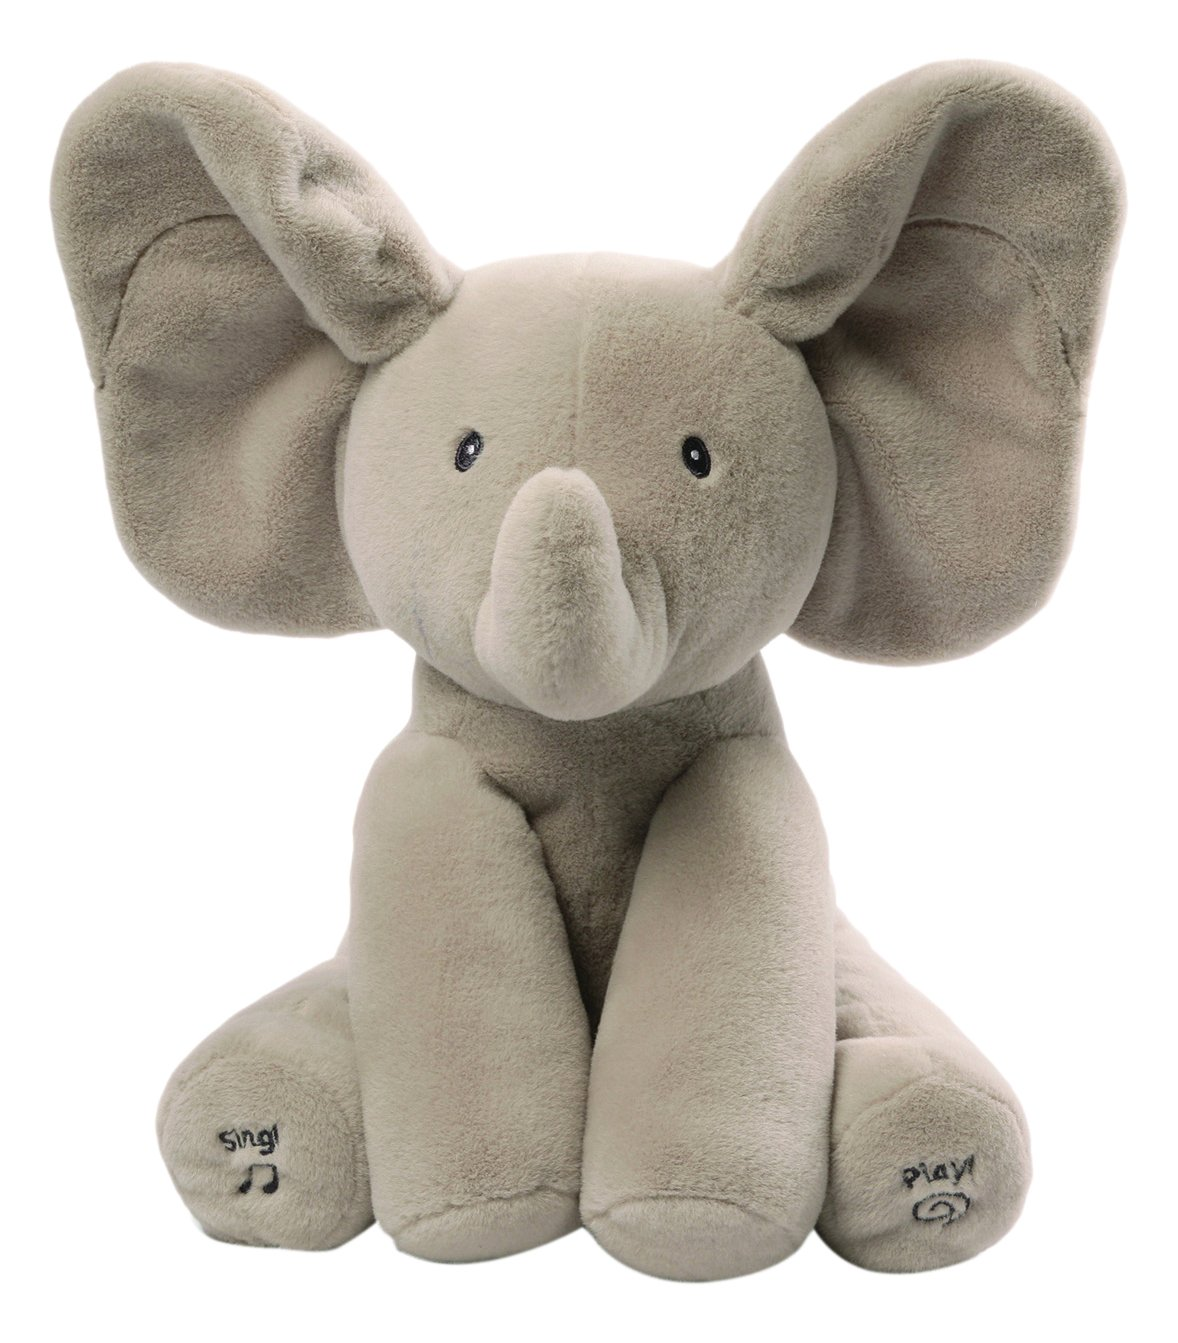 flappy the elephant peek a boo animated talking singing plush kids comfort new. Black Bedroom Furniture Sets. Home Design Ideas